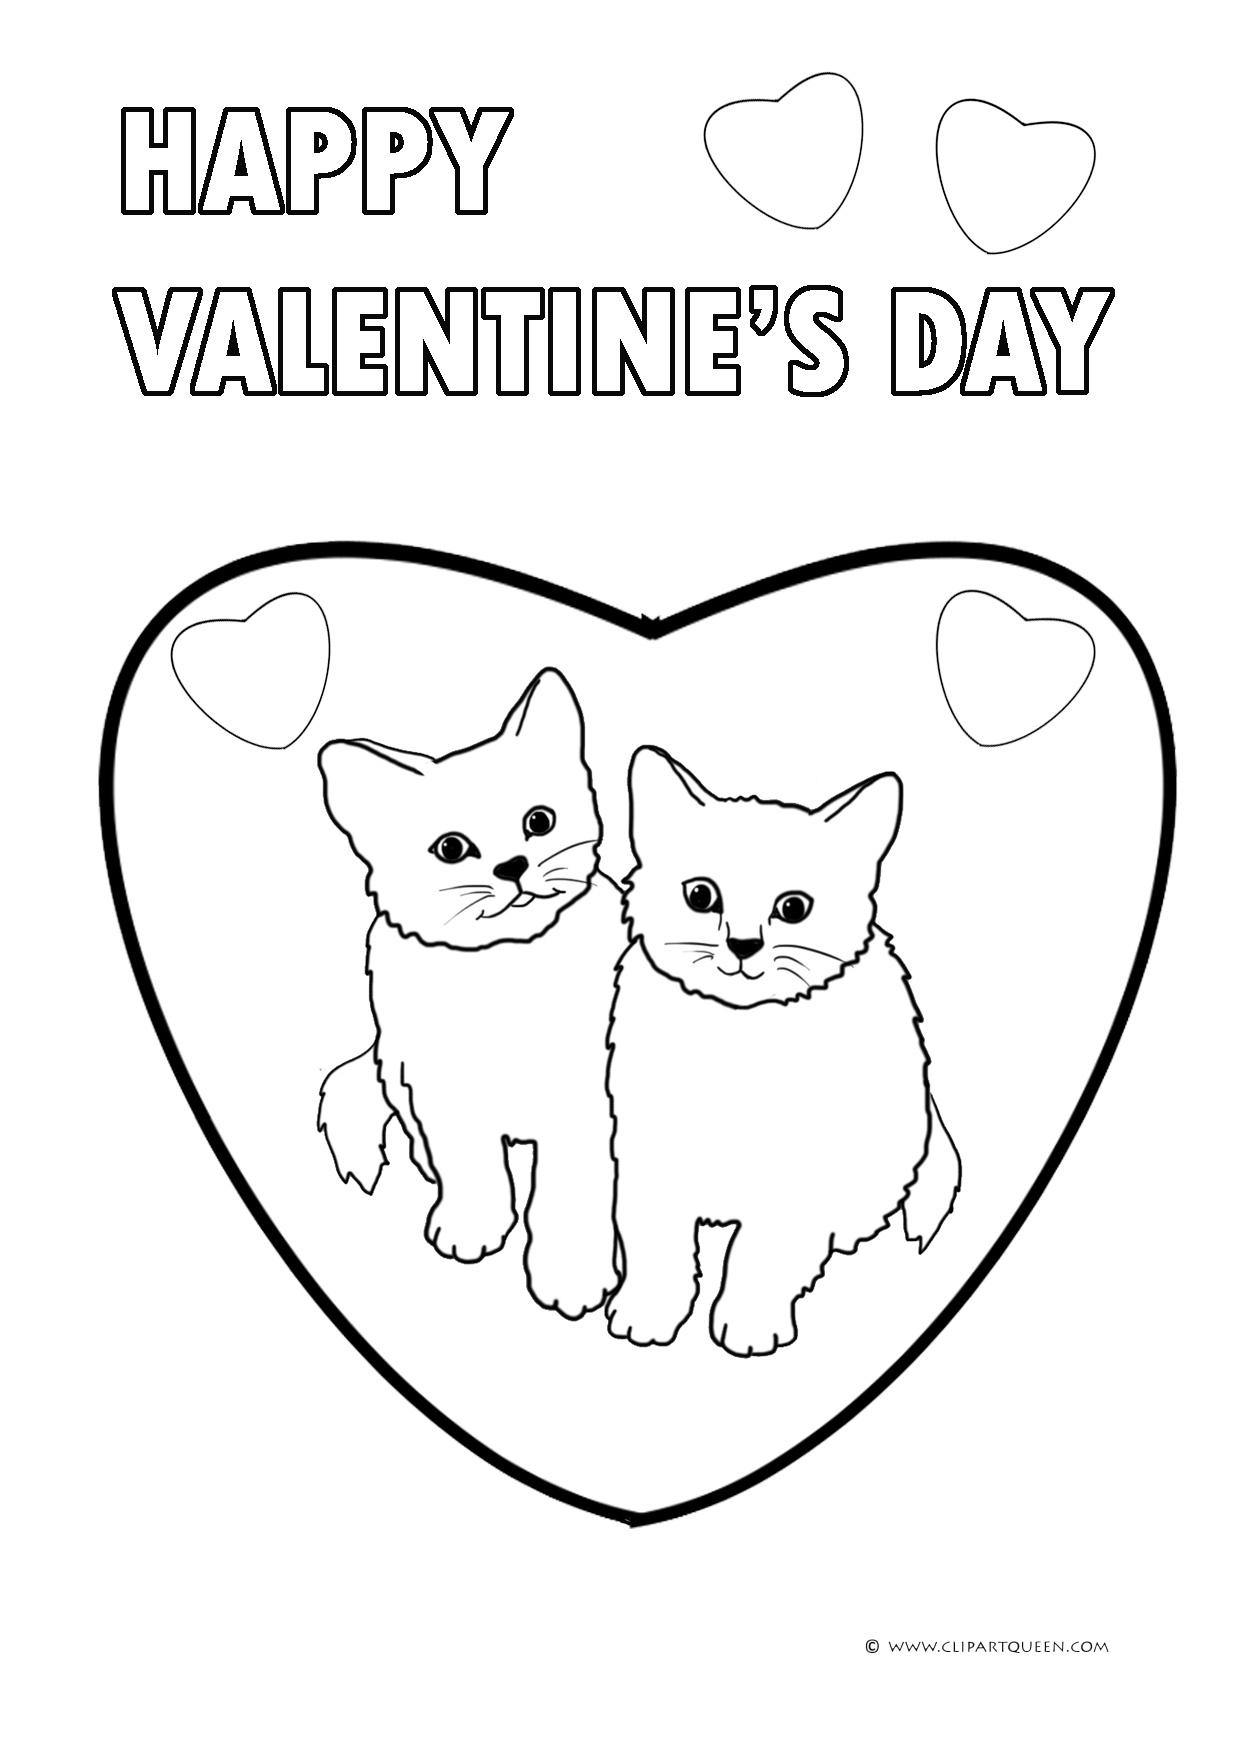 11 Valentine S Day Coloring Pages